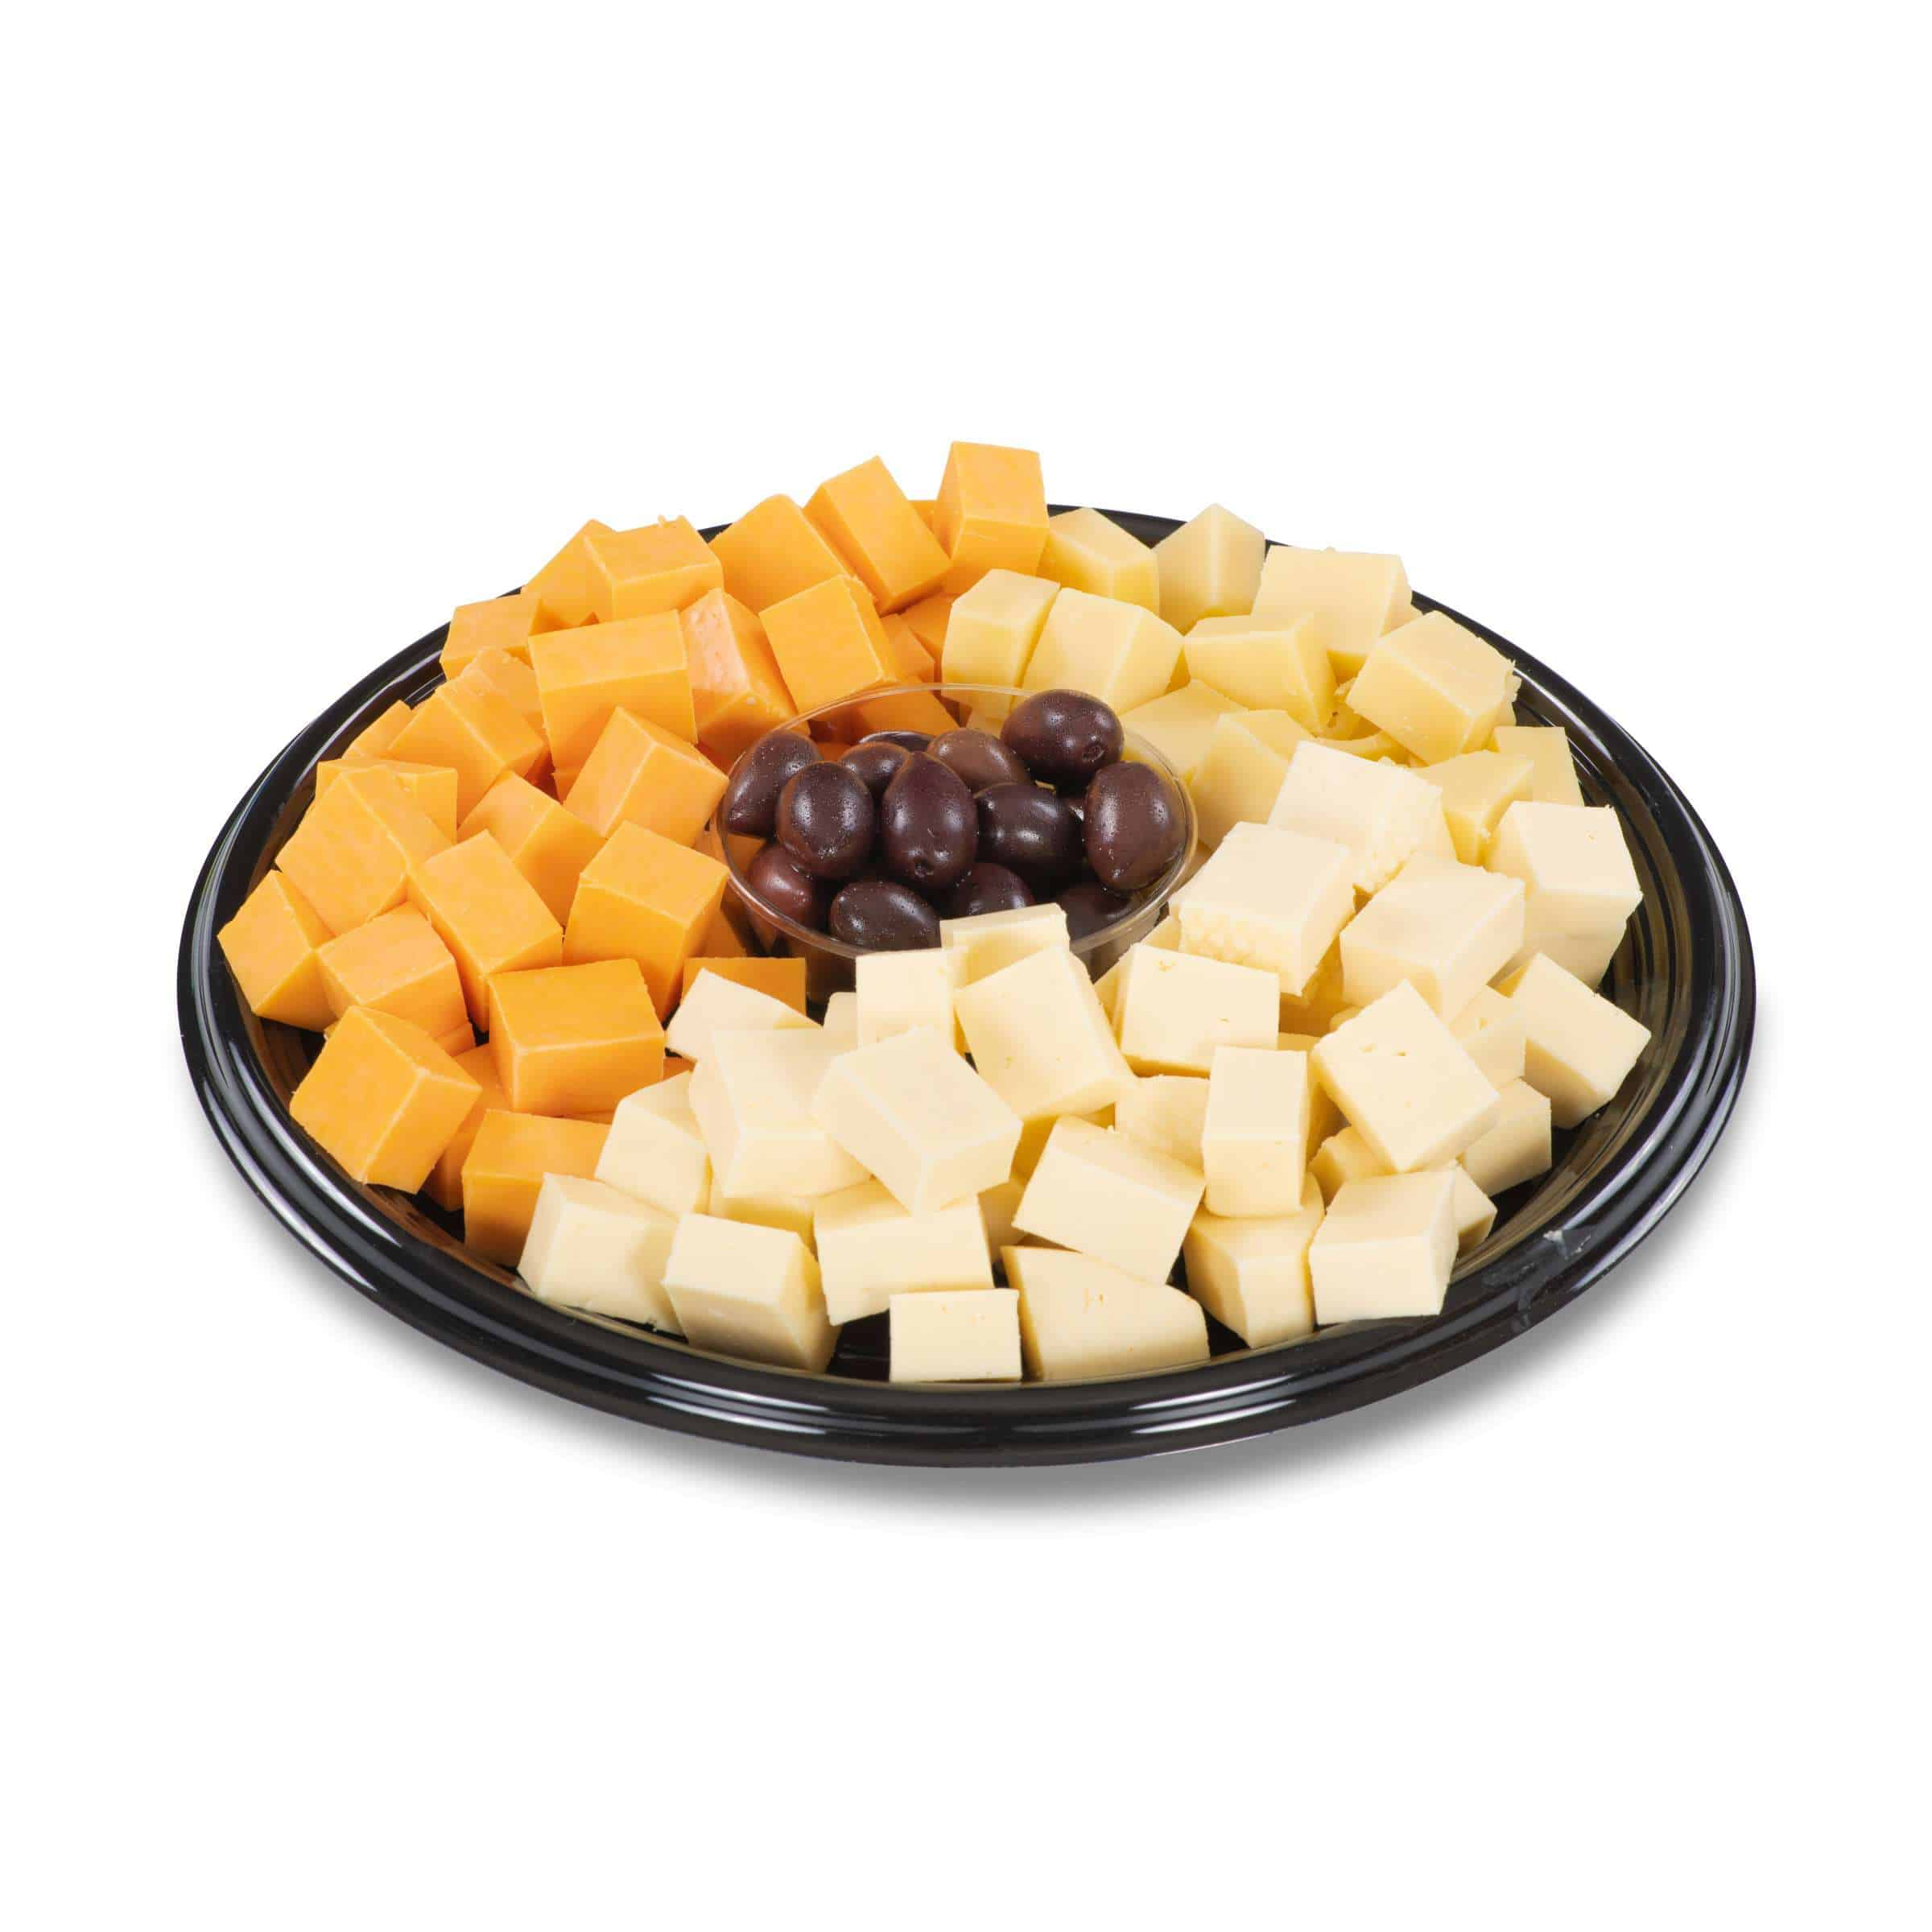 Traditional Cheese Platter-Small-Serves 5-10 persons